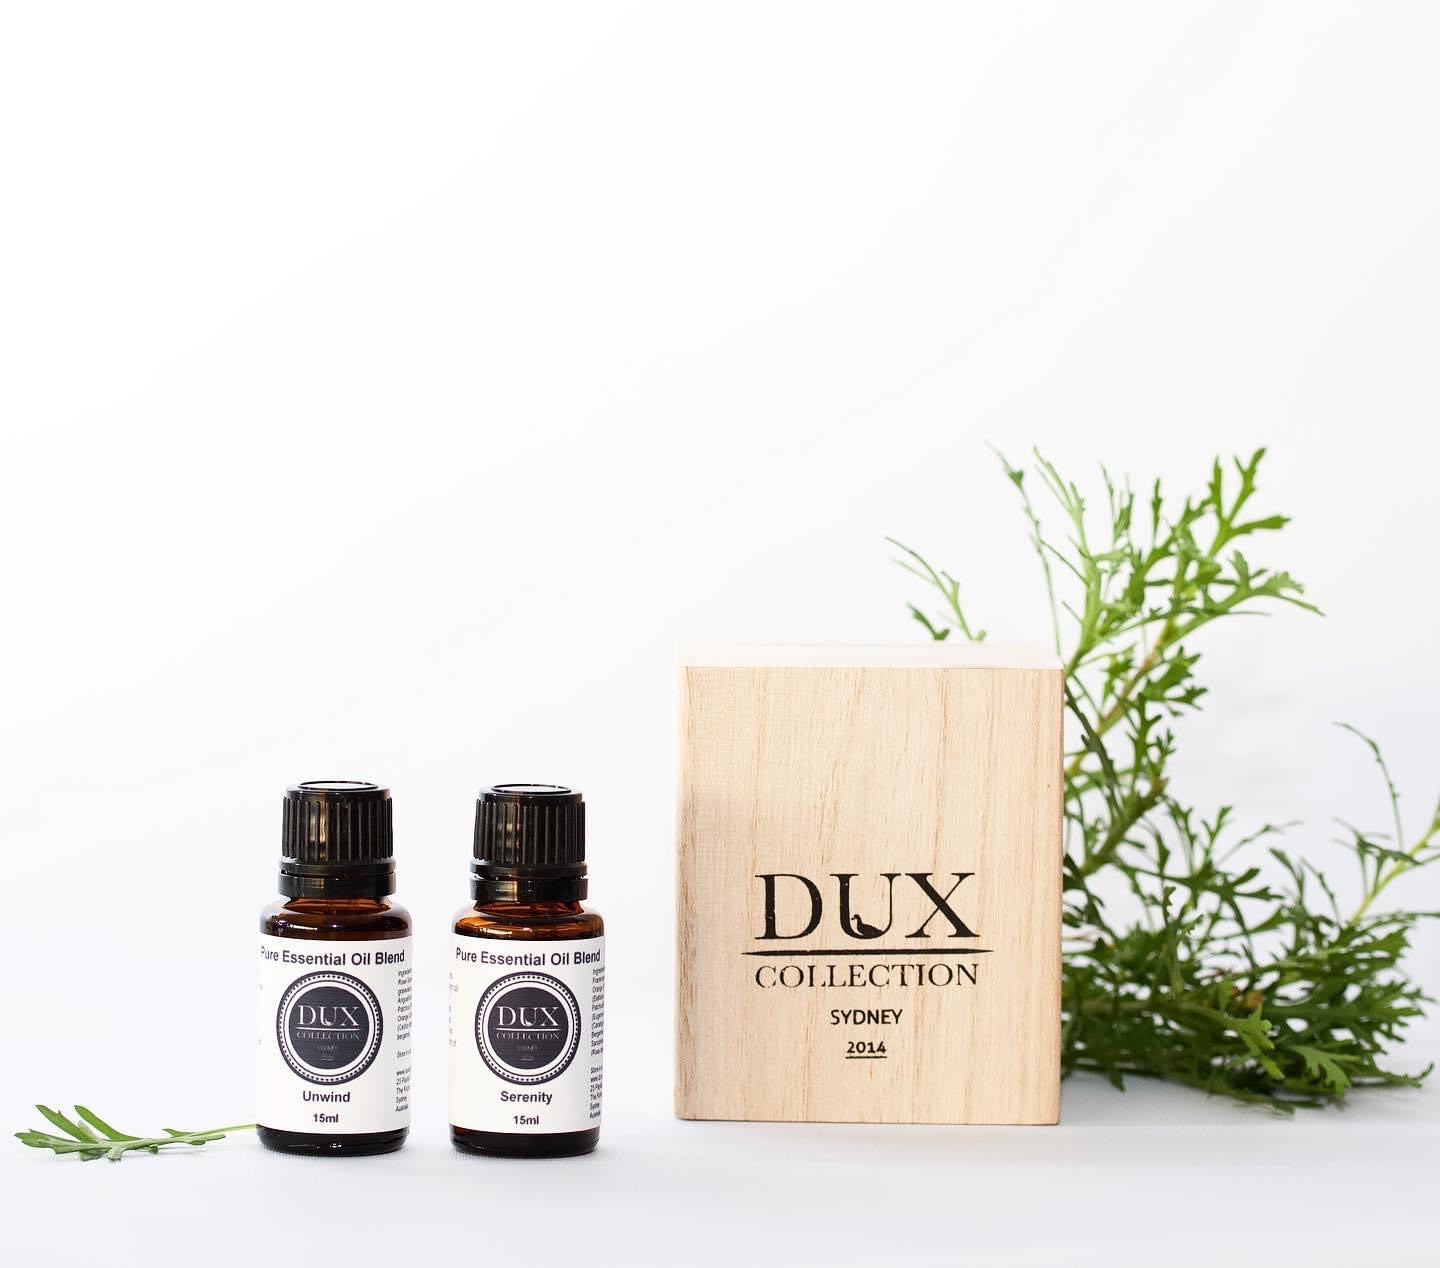 Pure Essential Oil Duo Gift Pack - Unwind and find Serenity - Limited Edition